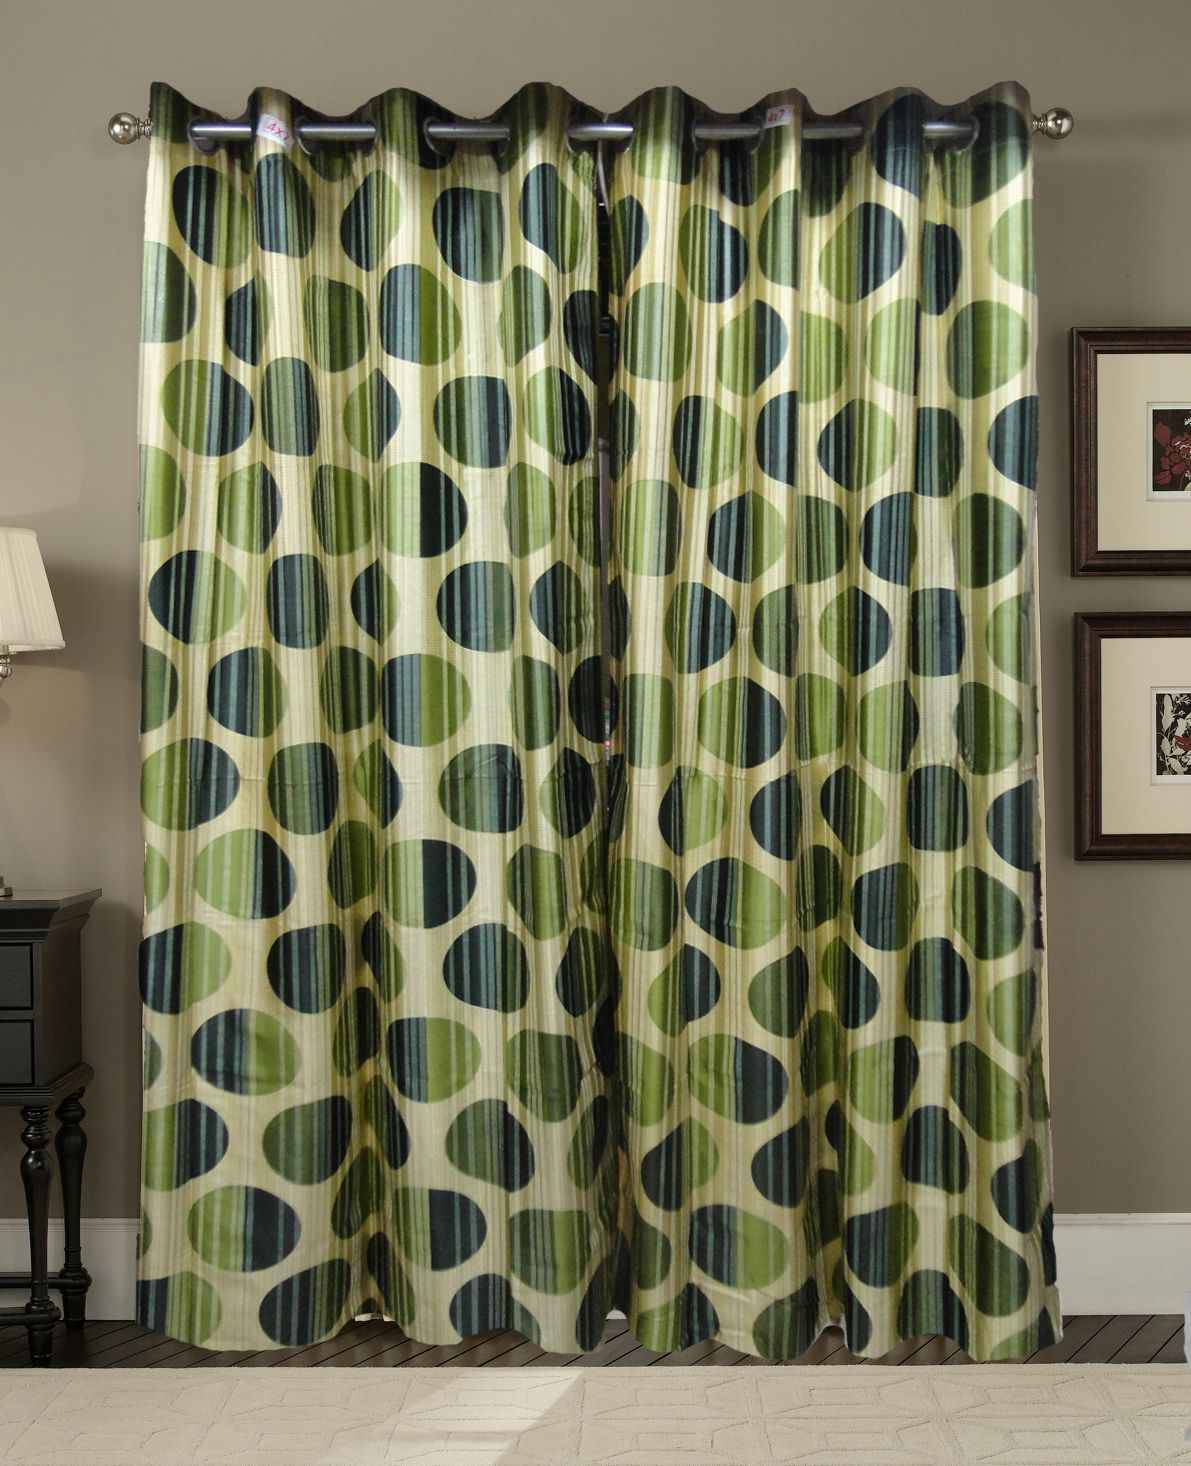 If you crave a curtain you can very well opt for our eyelet